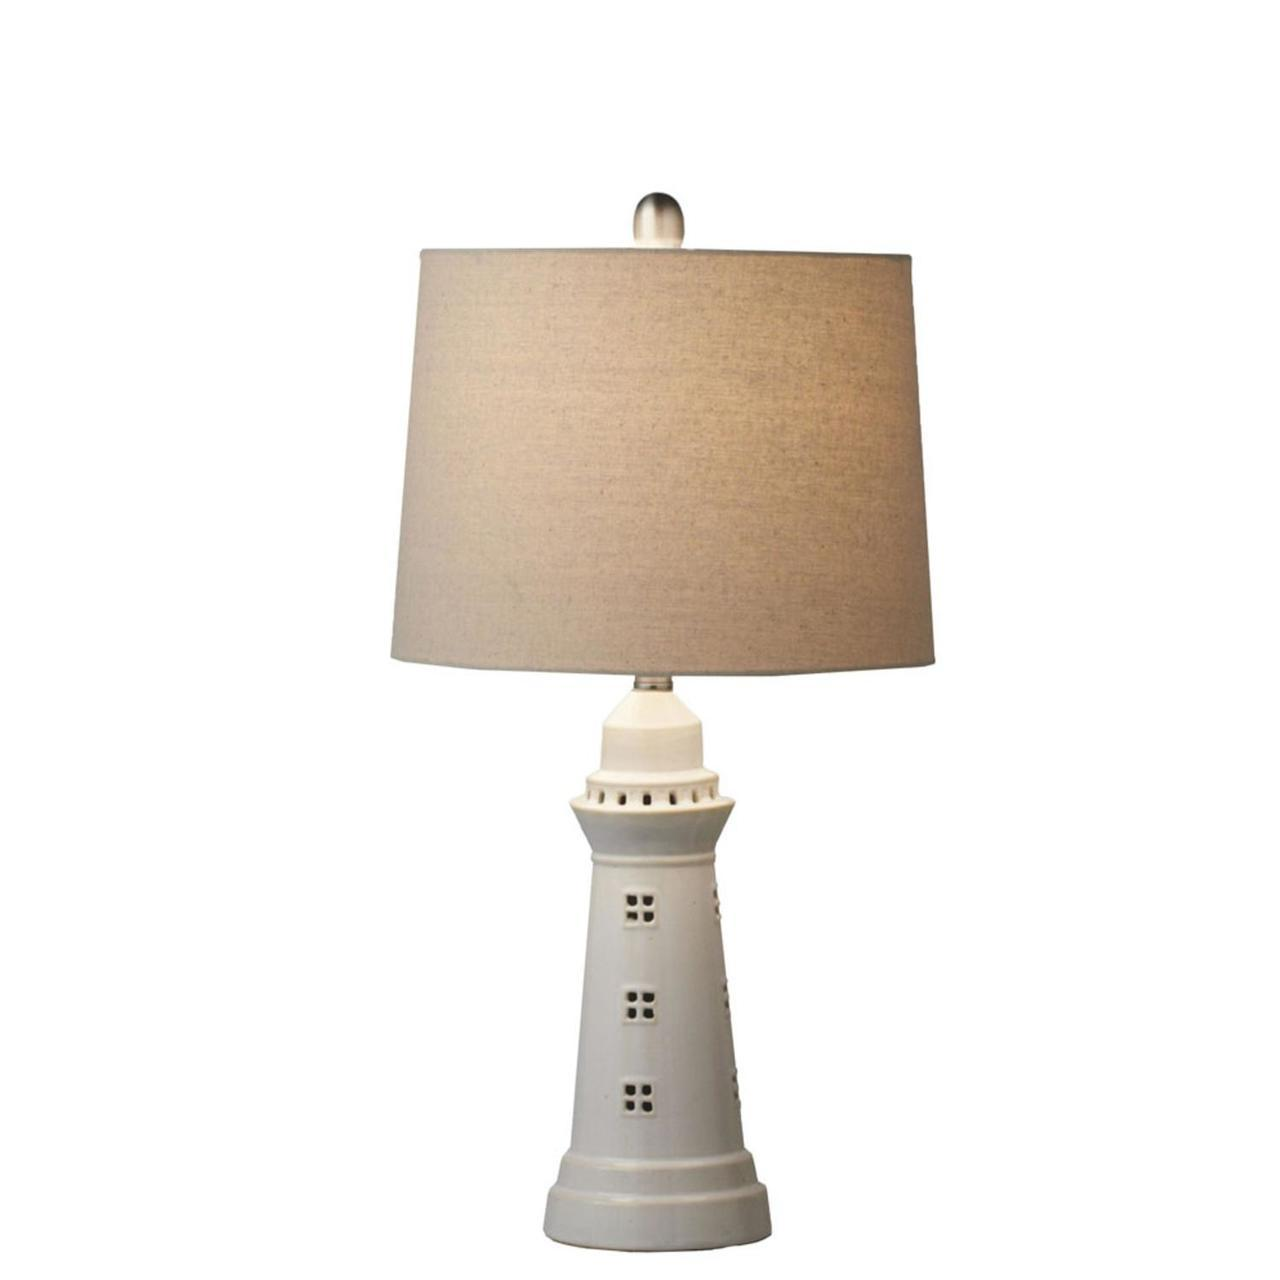 set white decorative lighthouse accent table lamp max lamps glass coffee with metal legs heavy duty drum throne resin wicker end modern patio furniture clearance pottery barn top